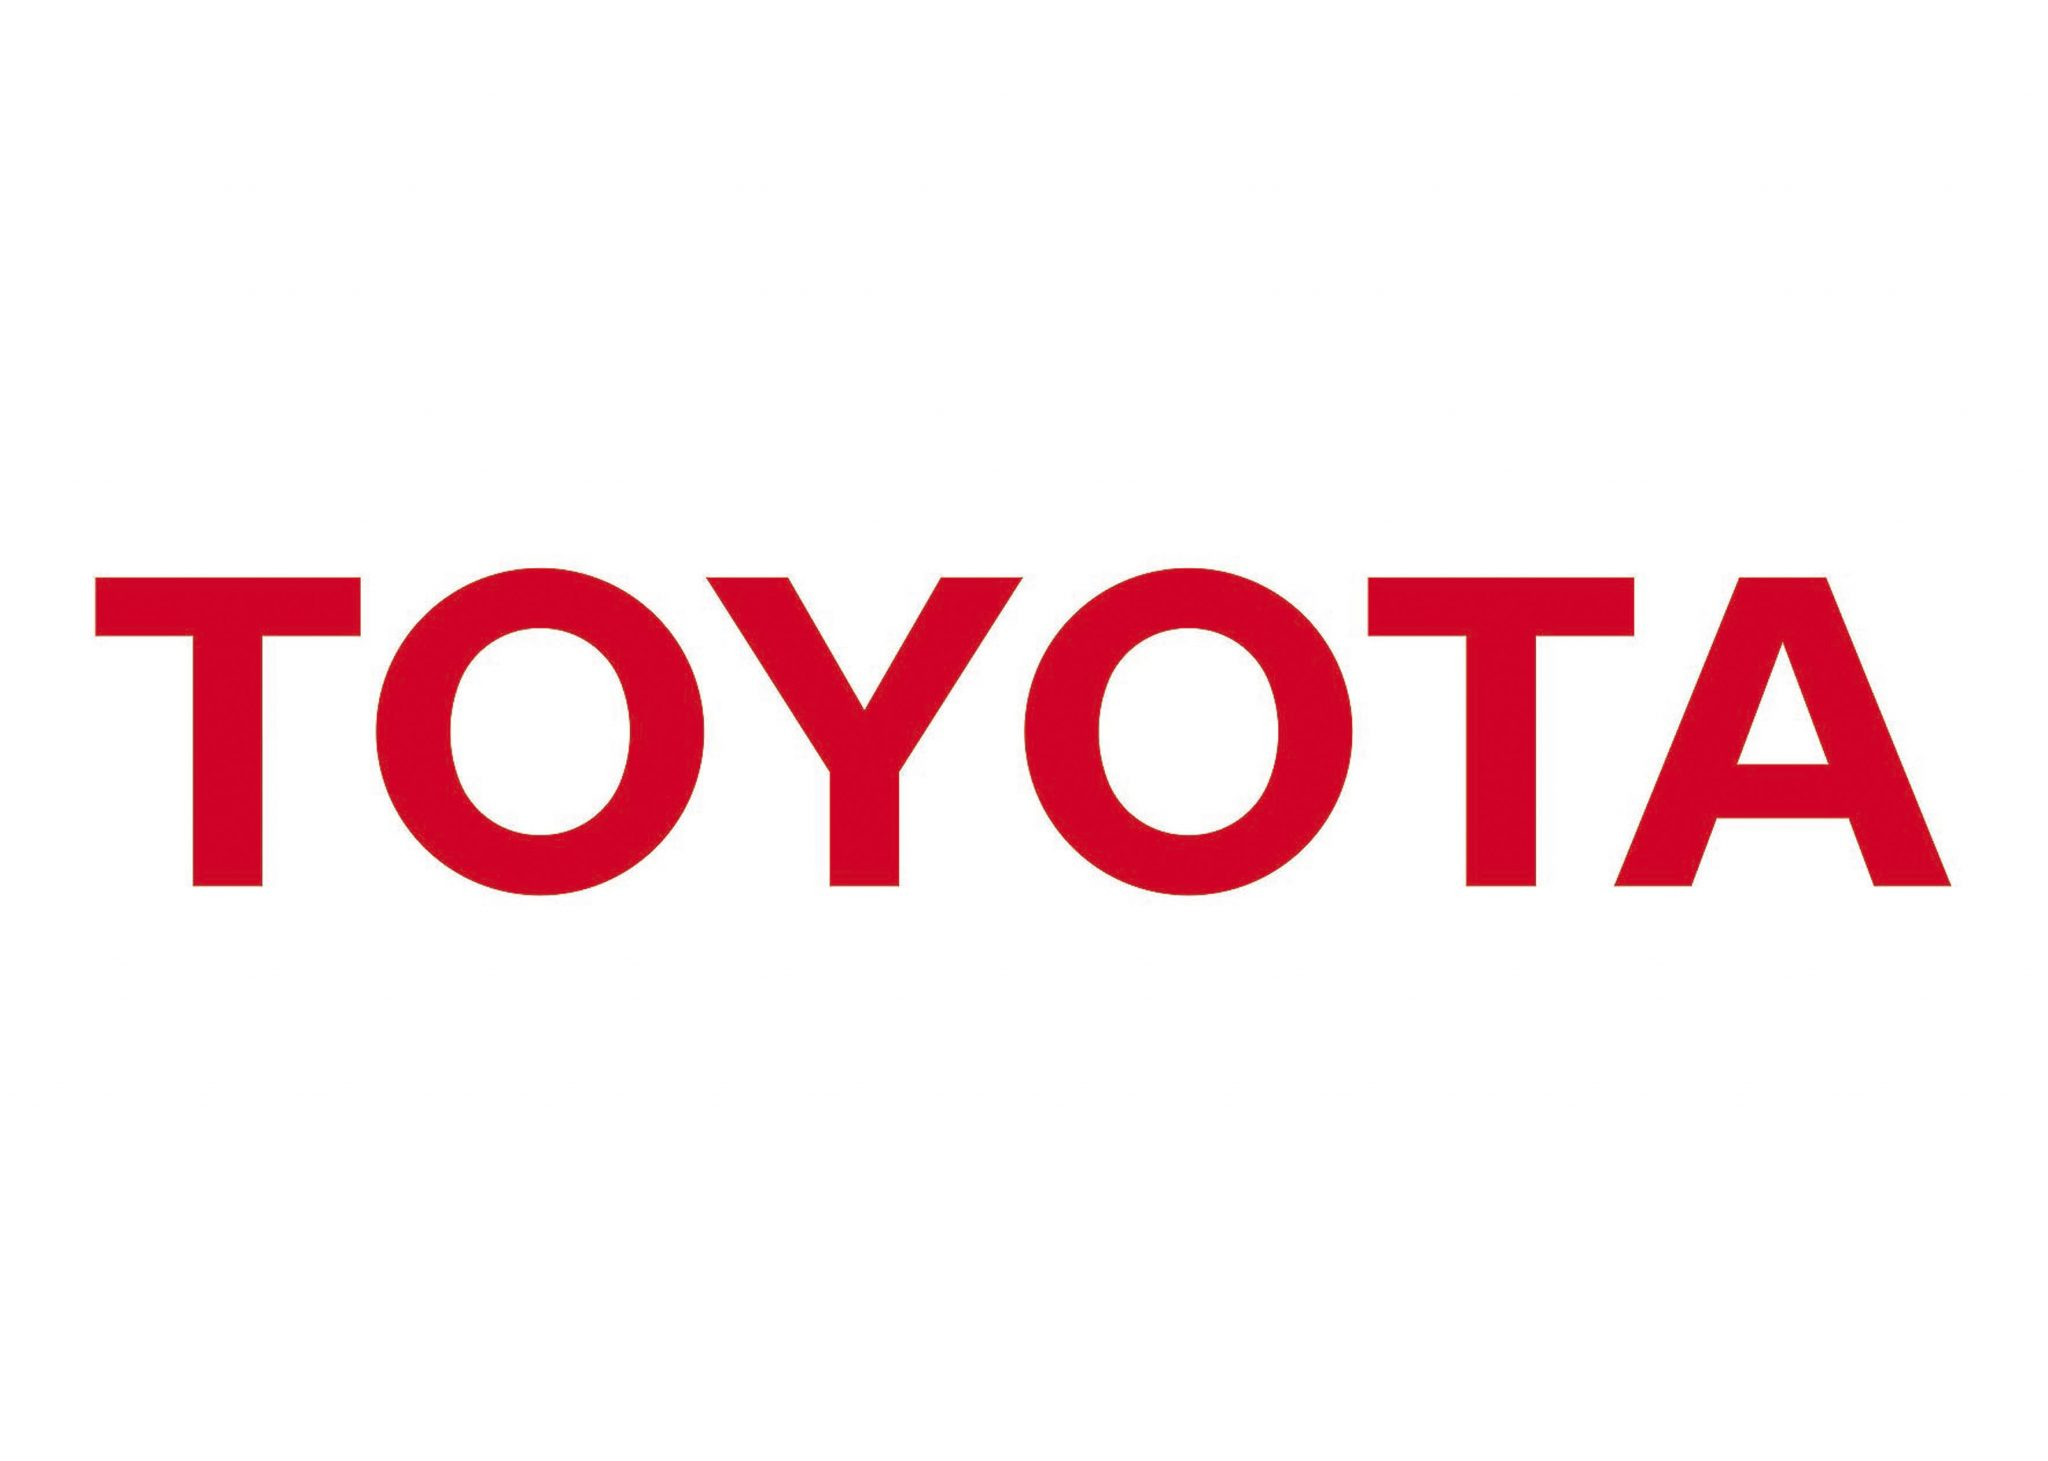 Captivating 08 Dec Toyota Material Handling Reaffirms Its Leading Position In  Sustainability In Europe